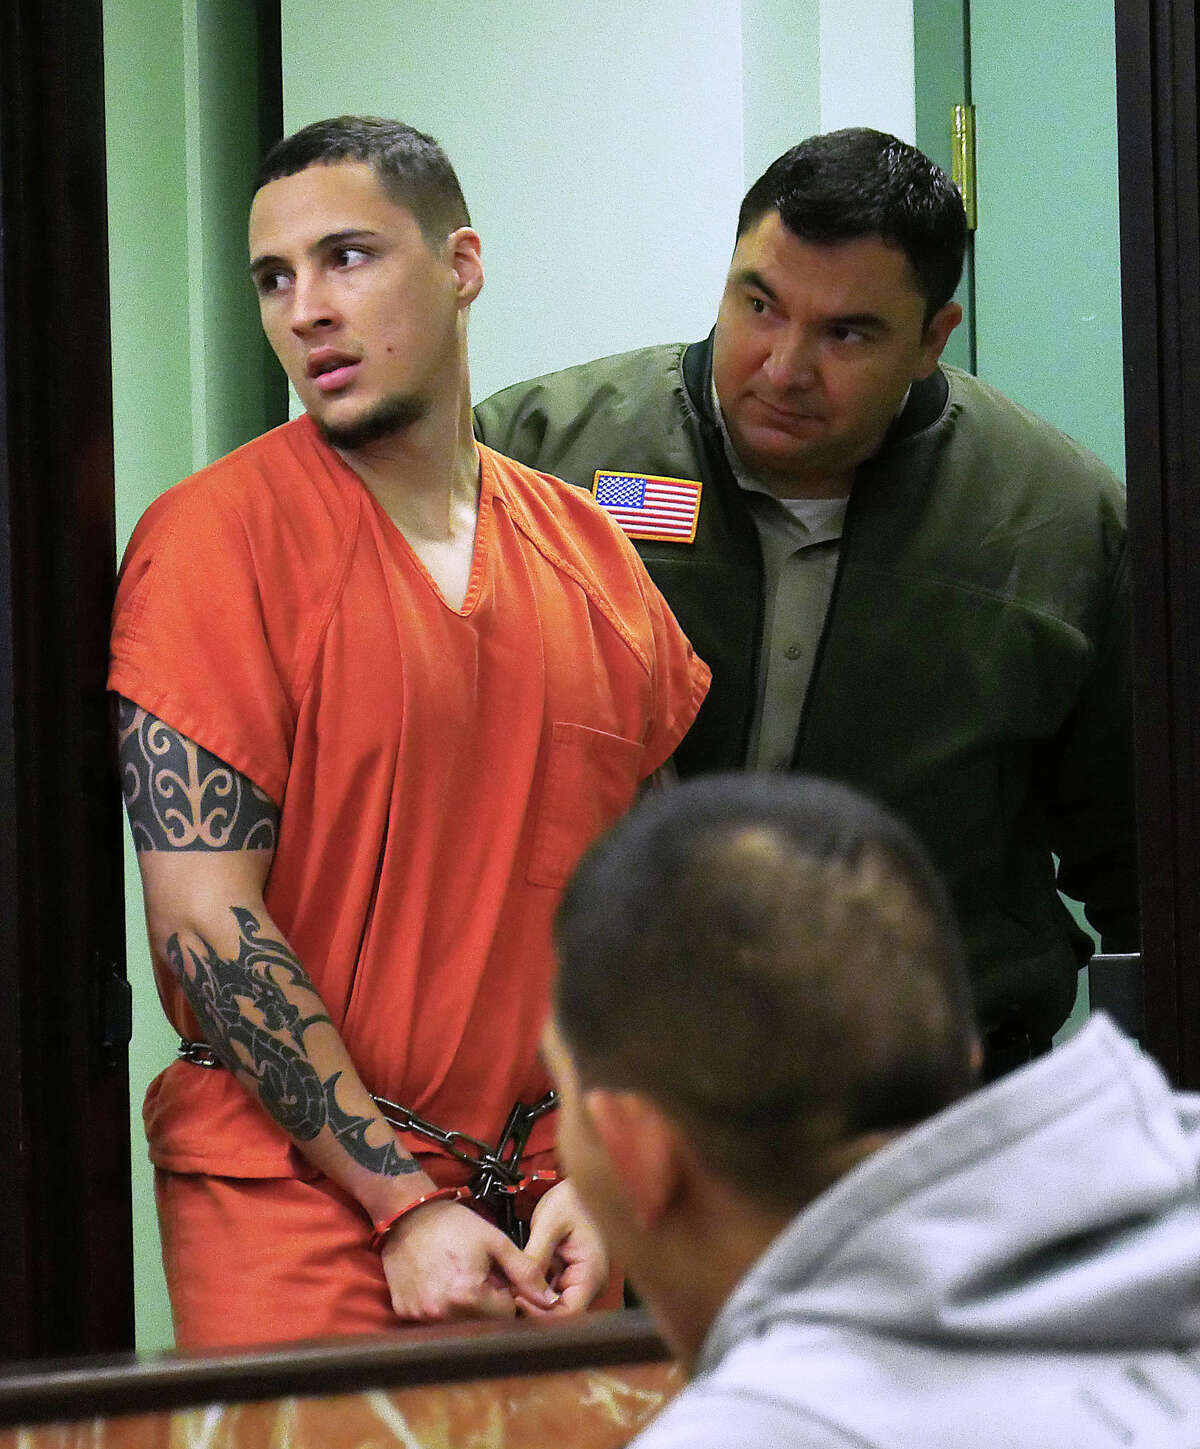 In his third attempt, the former supervisory Border Patrol agent accused of allegedly stabbing his lover and 1-year-old son to death in 2018 filed a third motion to request that the lead attorney appointed to his case be removed.